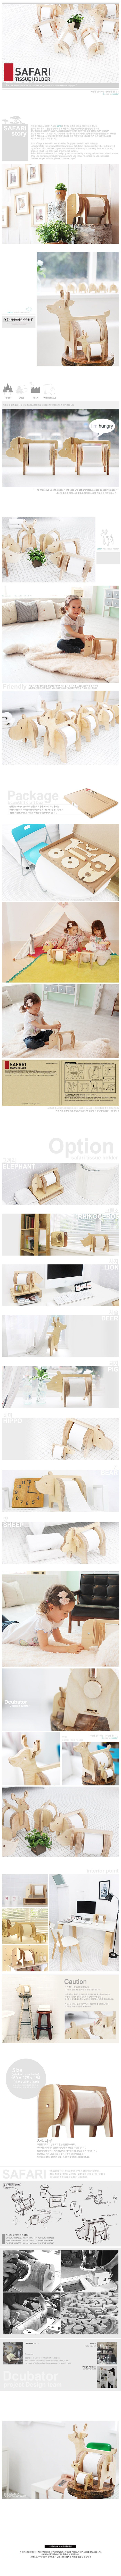 """Safari Roll tissue holder is a design goods motivated by starving animals who inhabit  a fores. We'd like to message visually everyone who use tissue """"the more we use the paper, the less we get animals, please conserve paper"""""""